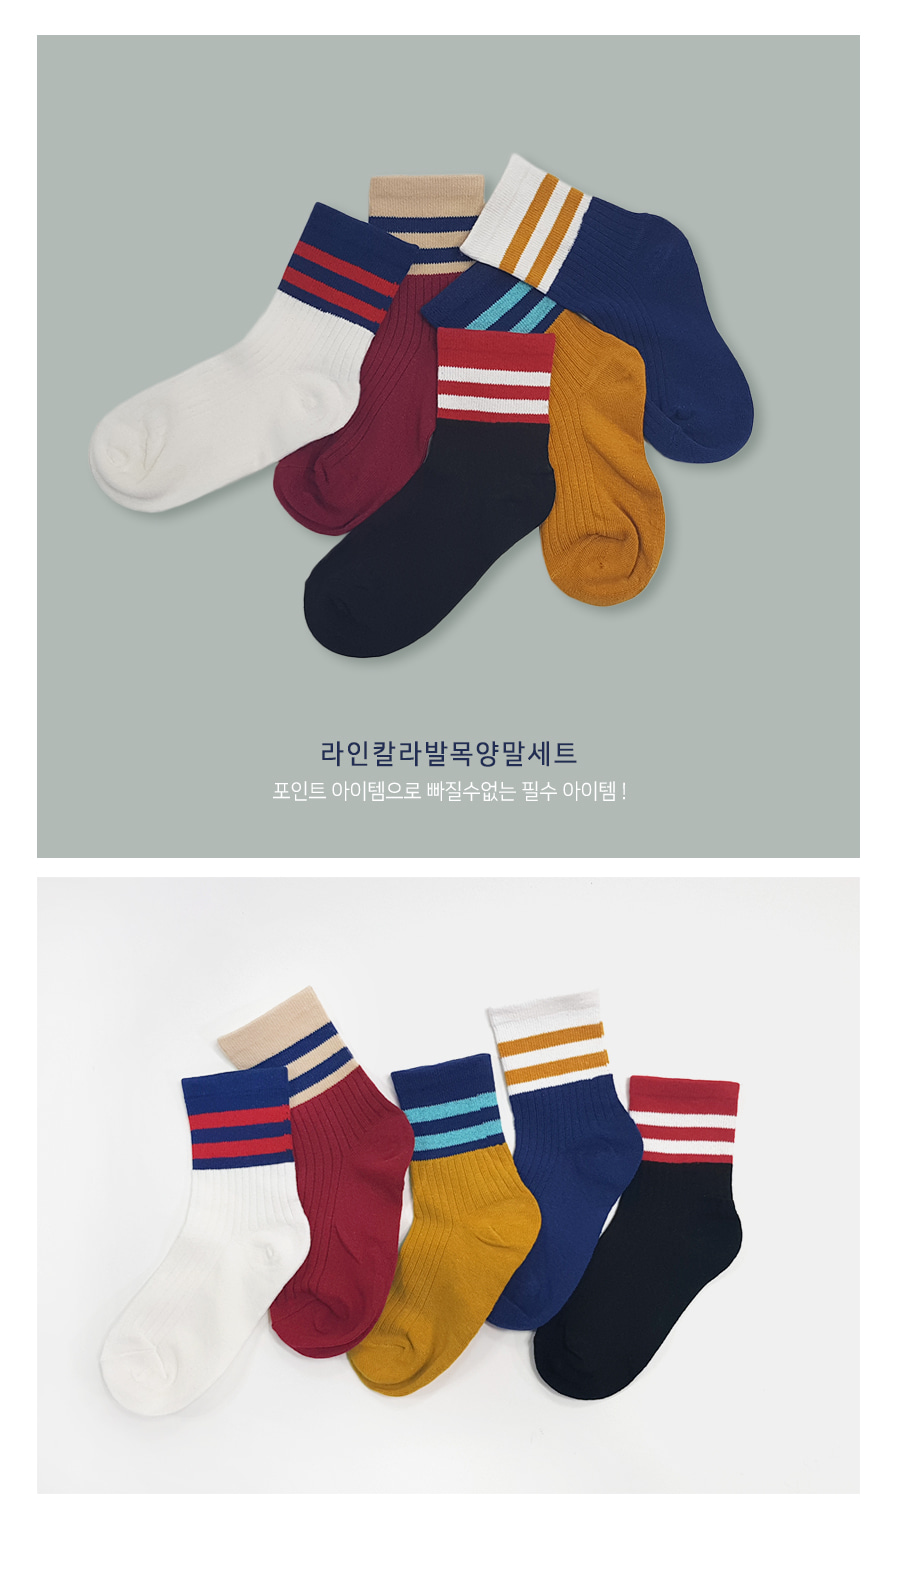 stripe_socks_01.jpg